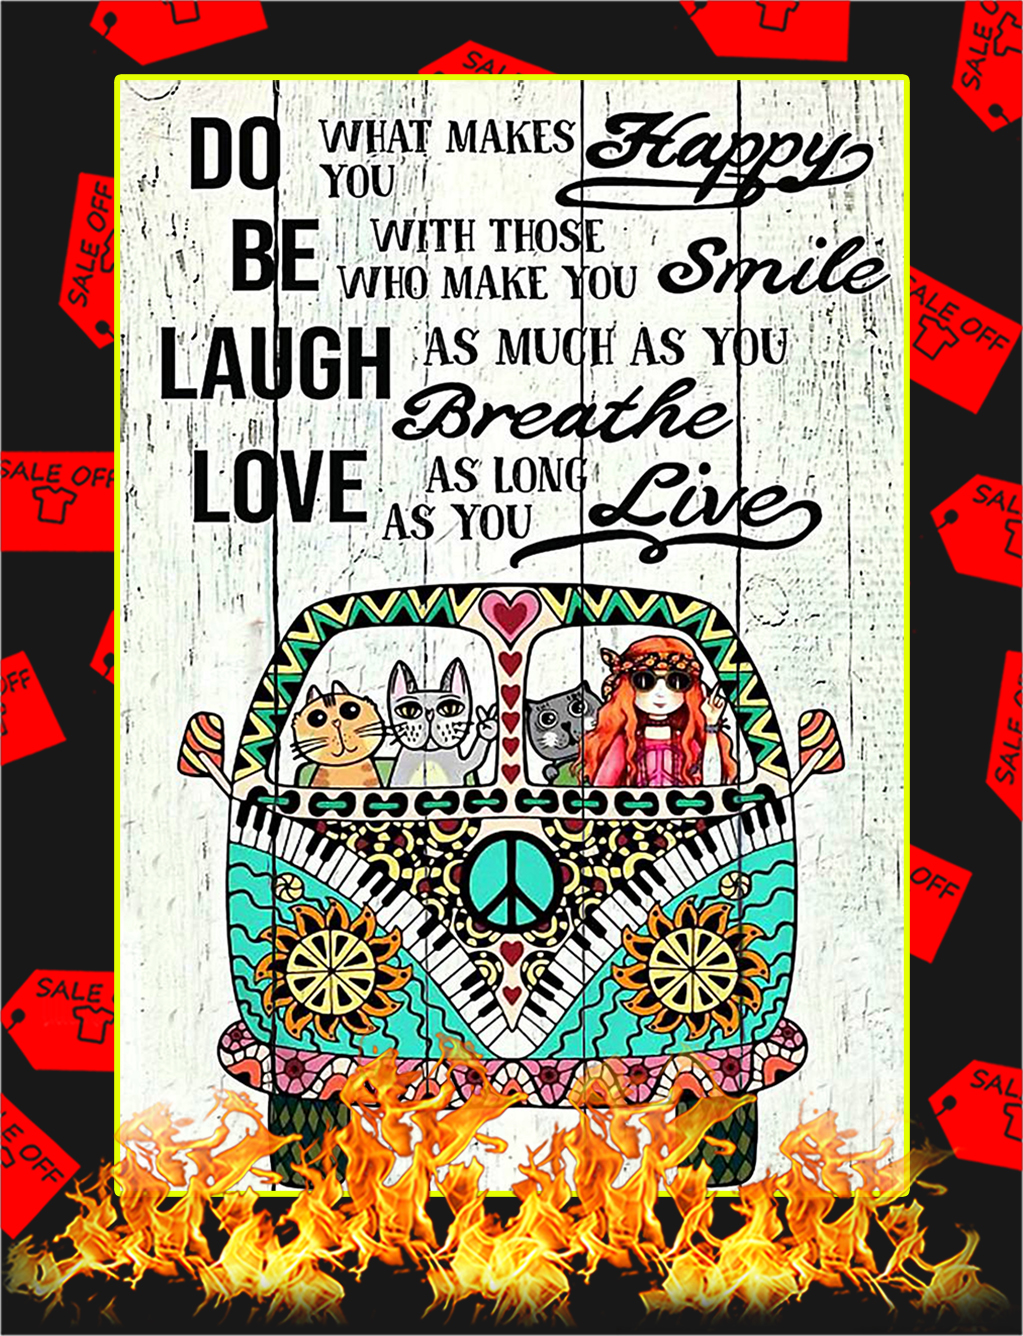 Hippie Girl and Cat do what makes you happy Poster - A1